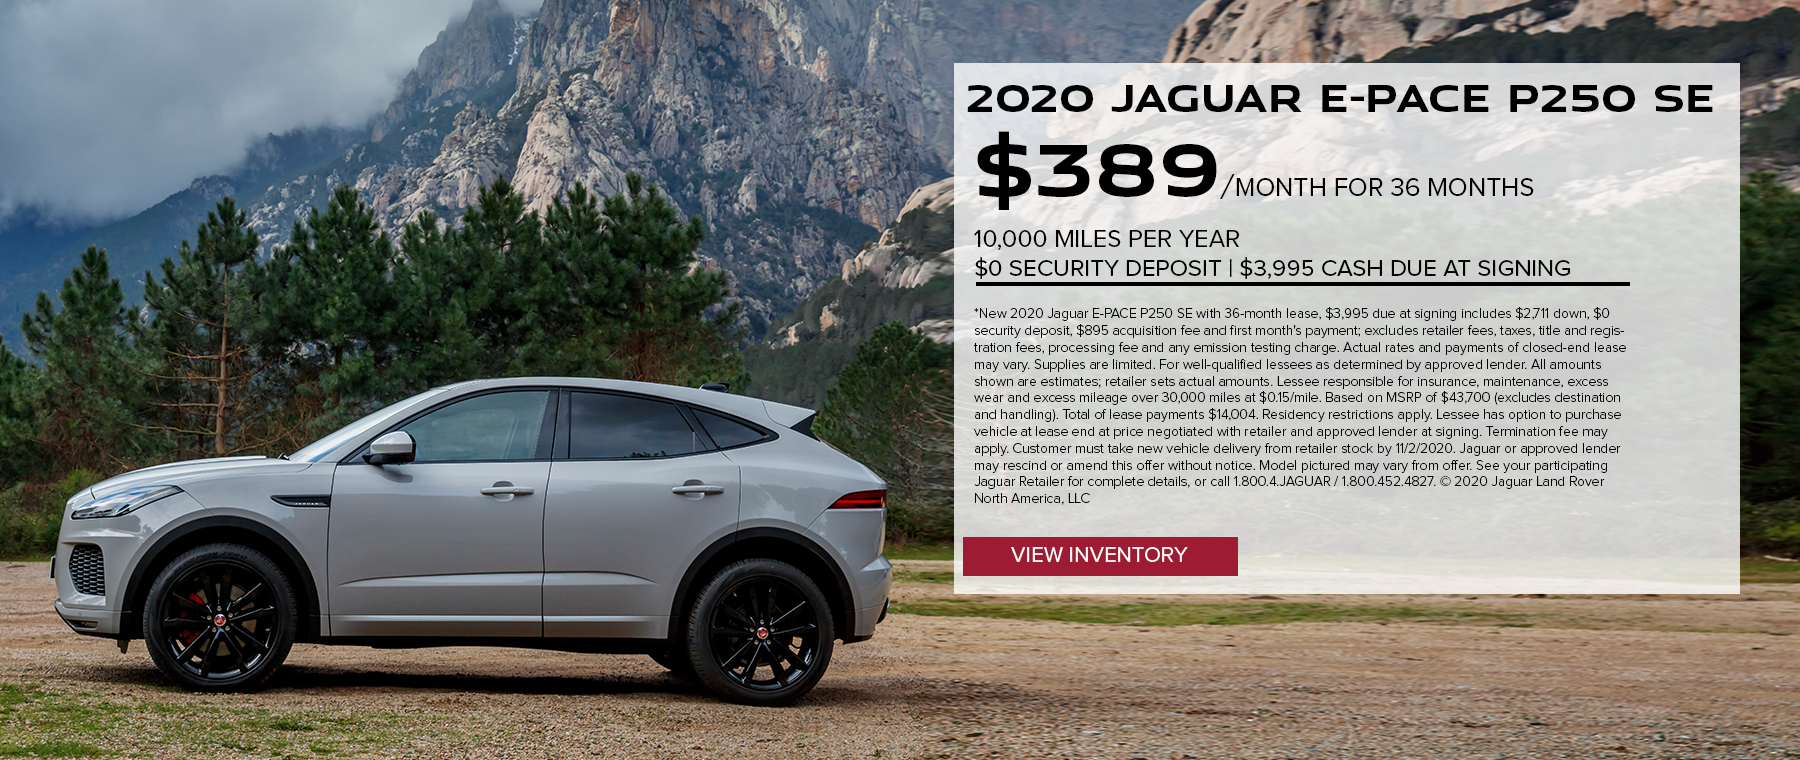 2020 JAGUAR E-PACE P250 SE. $389 PER MONTH. 36 MONTH LEASE TERM. $3,995 CASH DUE AT SIGNING. $0 SECURITY DEPOSIT. 10,000 MILES PER YEAR. EXCLUDES RETAILER FEES, TAXES, TITLE AND REGISTRATION FEES, PROCESSING FEE AND ANY EMISSION TESTING CHARGE. OFFER ENDS 11/2/2020.